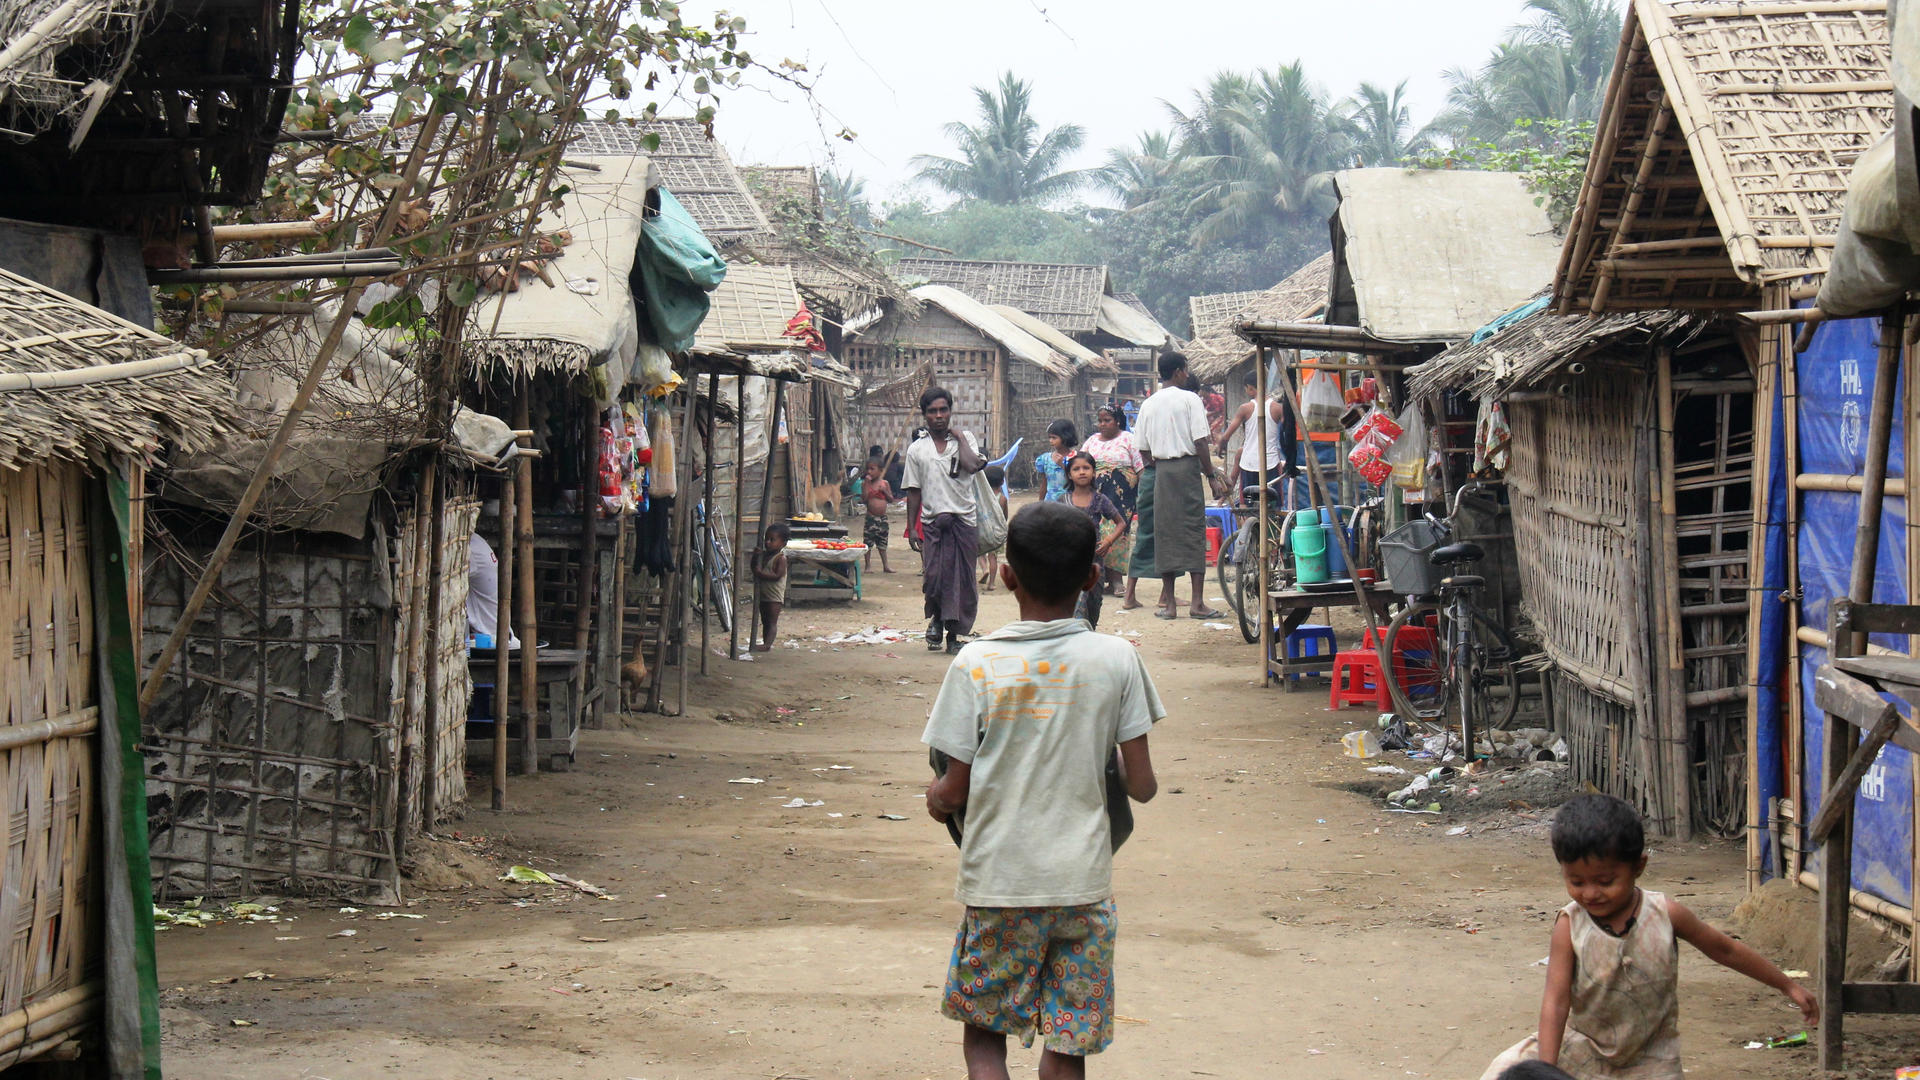 A boy walks through a camp for Muslims displaced by violence in Rakhine state, Myanmar